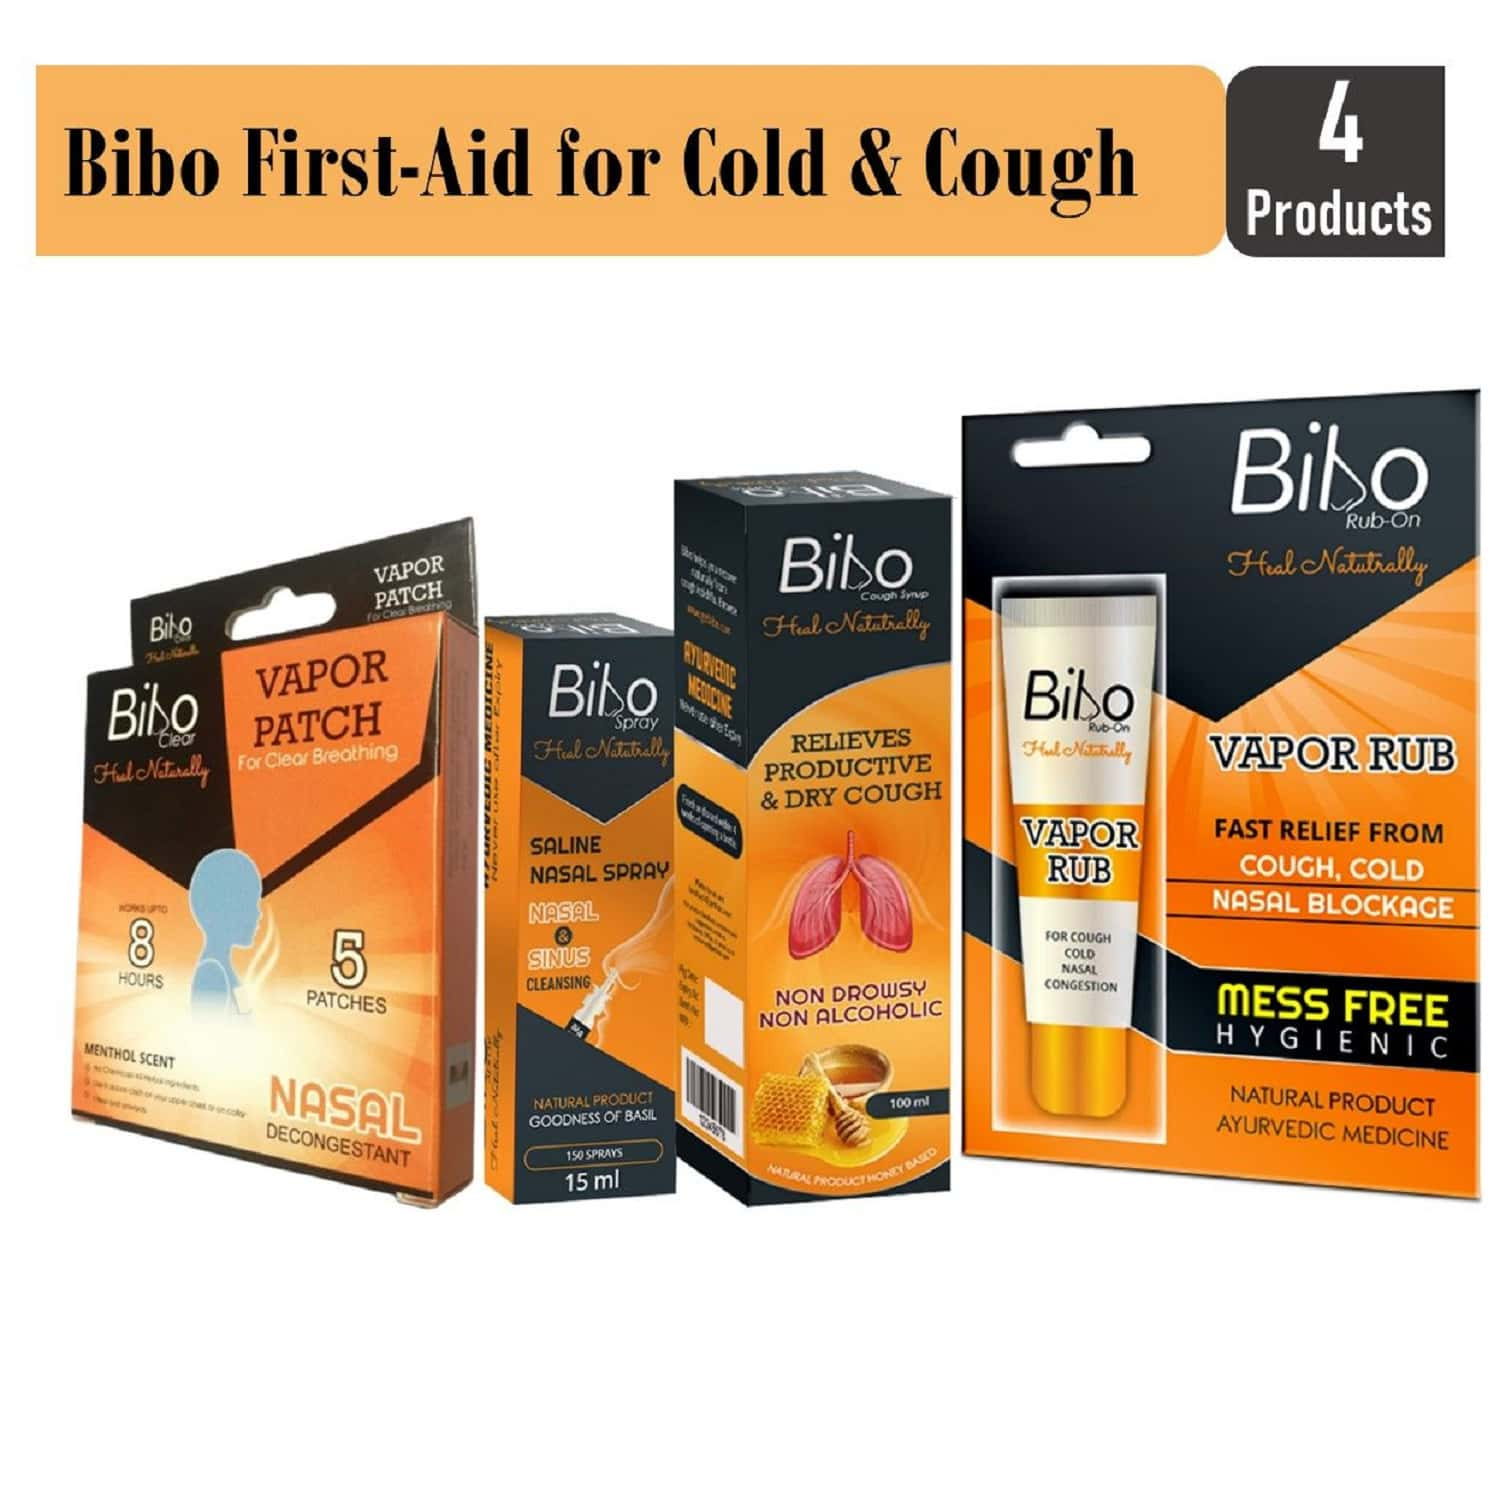 Bibo First-aid / Travel-kit For Cough & Cold - All Natural Products - Have A Pack At Home Always - Immunity Protector - 4 Products